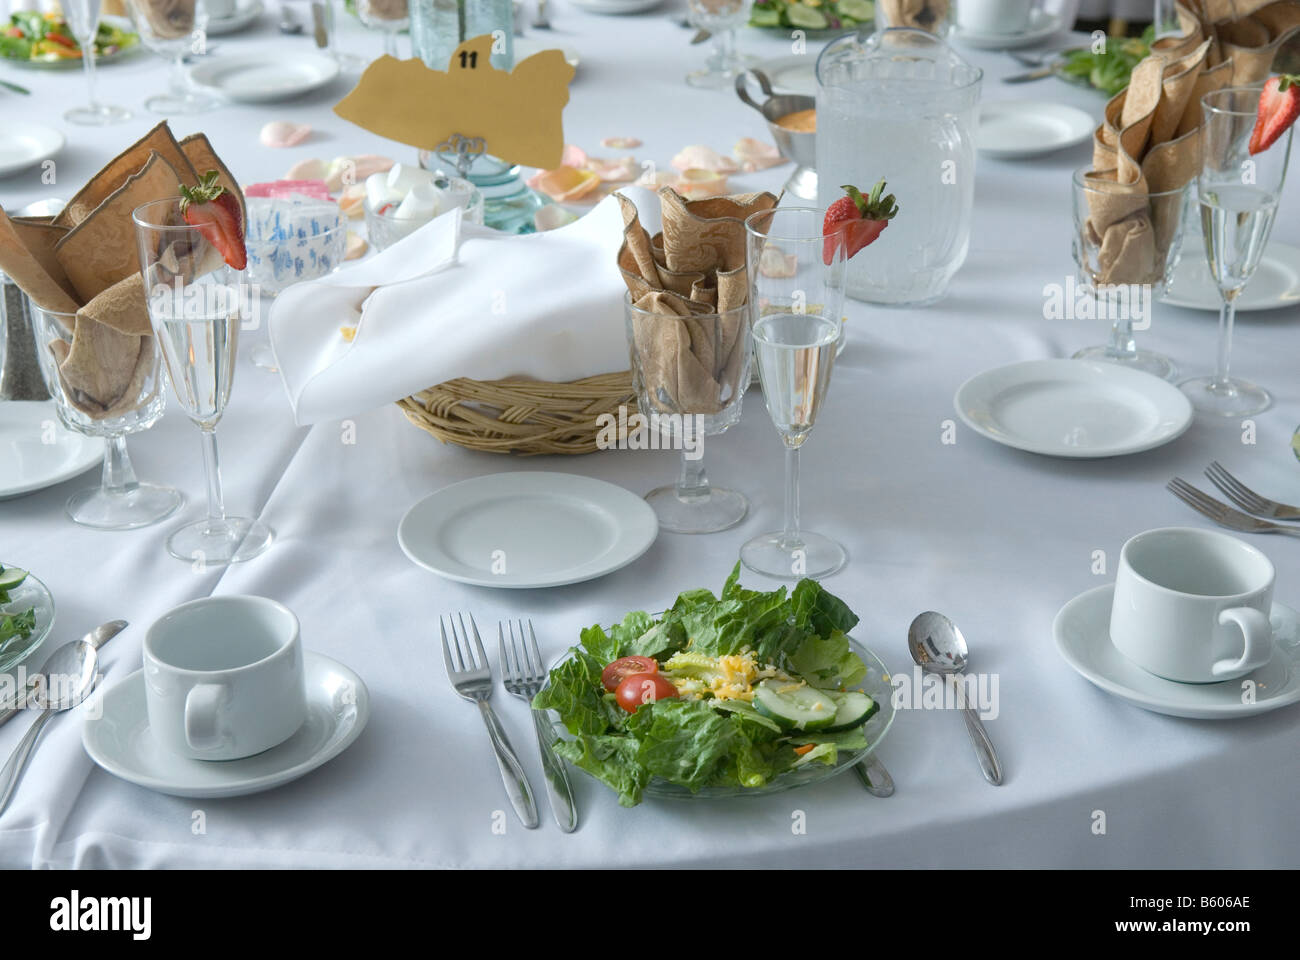 Formal table setting with a salad & Formal table setting with a salad Stock Photo: 20903302 - Alamy